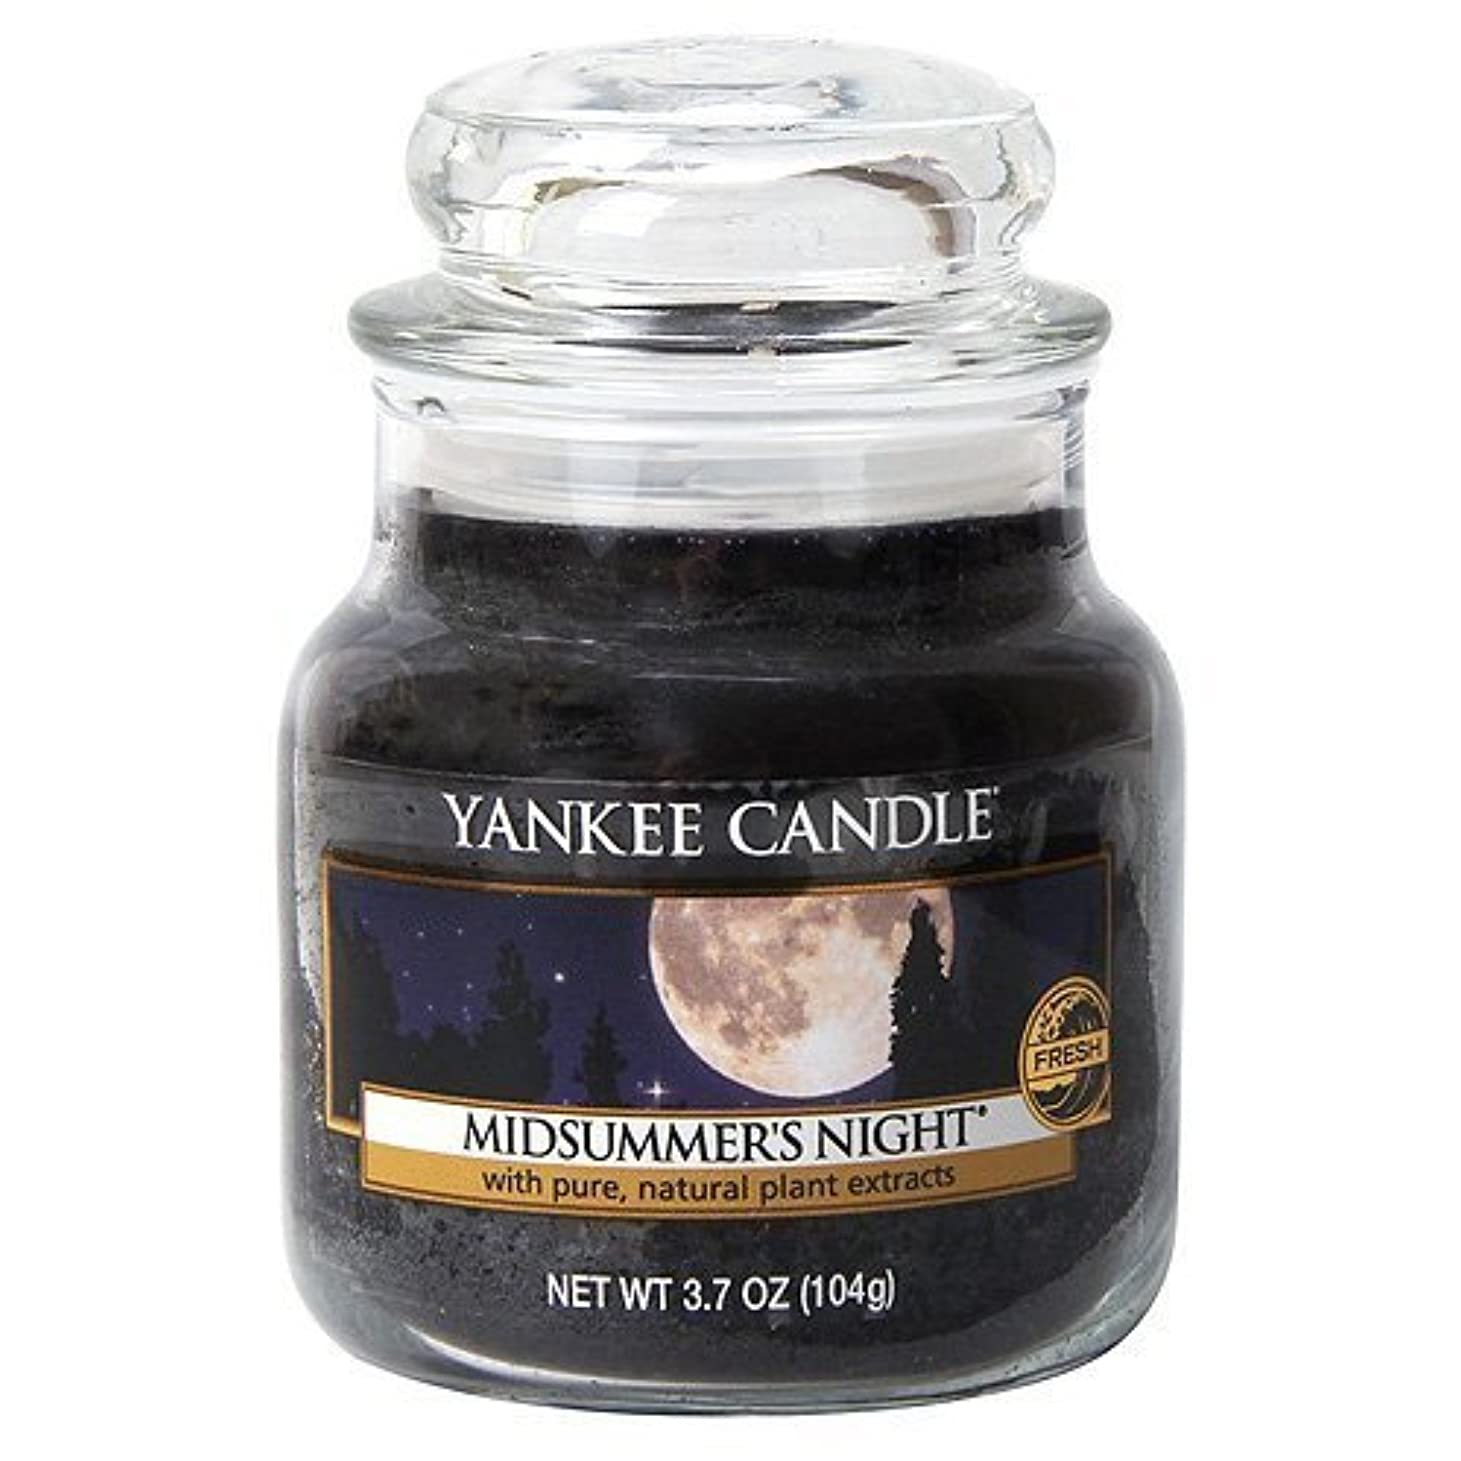 住居ベイビー弁護人Yankee Candle Midsummer's Night Small Jar Candle, Fresh Scent by Yankee Candle [並行輸入品]